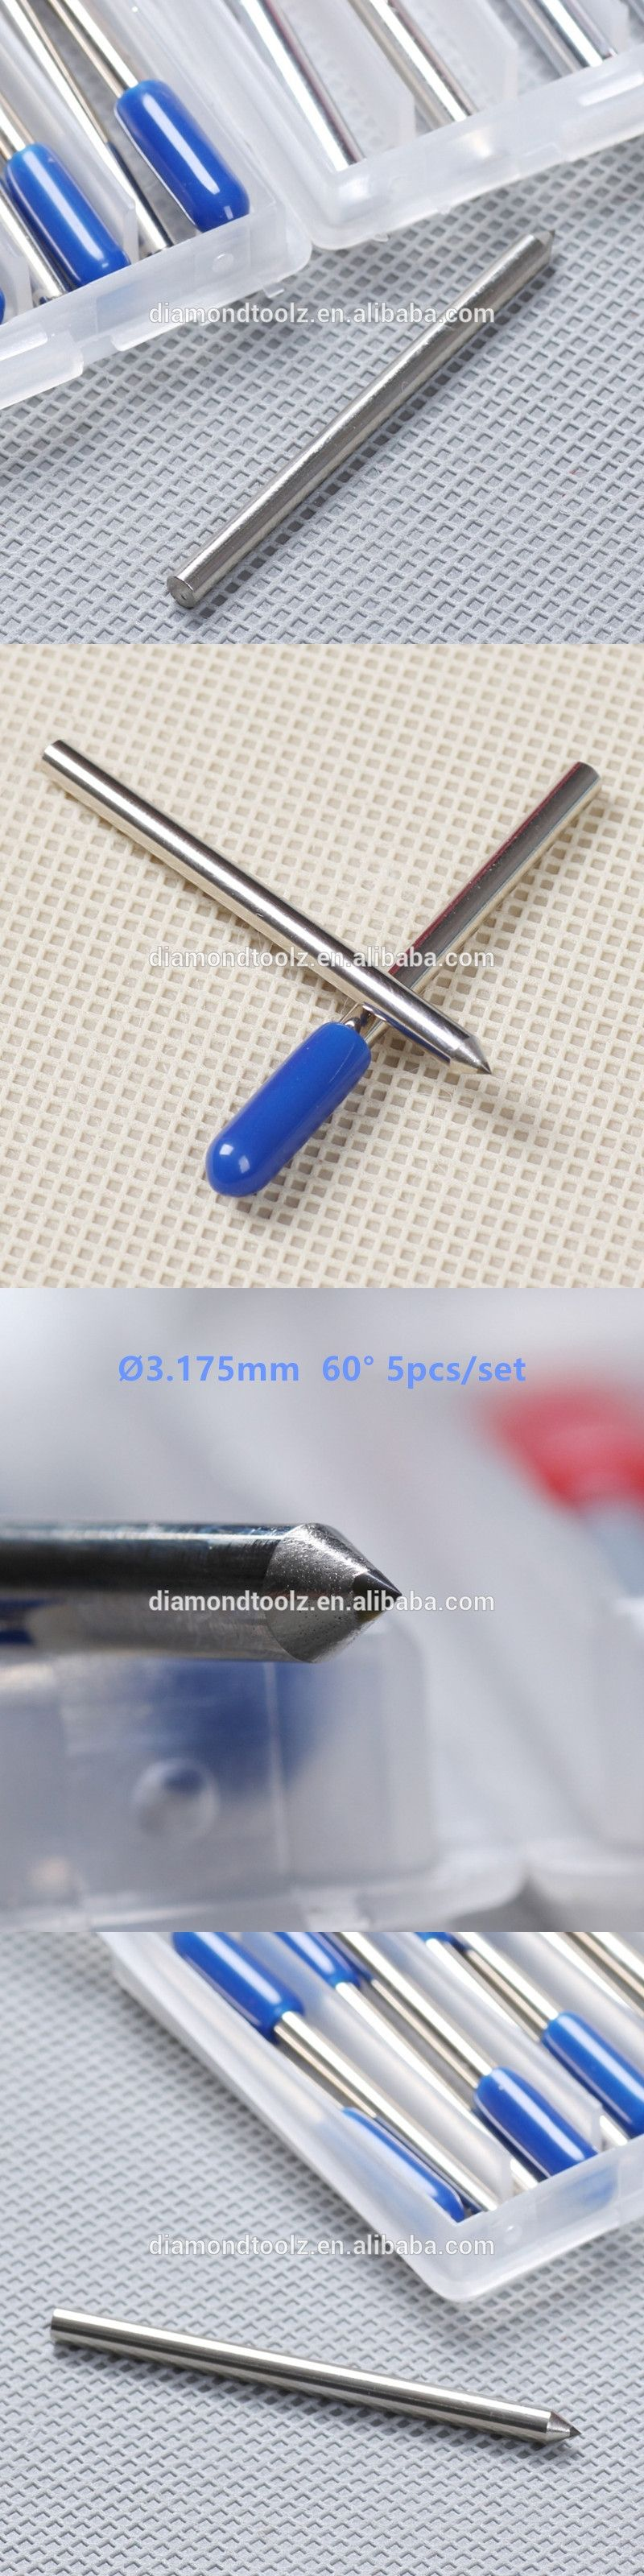 Talentool Free Shipping 5pcs Set Diamond Drag Engraving Bit With 60 Laser Engraver The Electronic Mercenary Degree Dia 3mm For